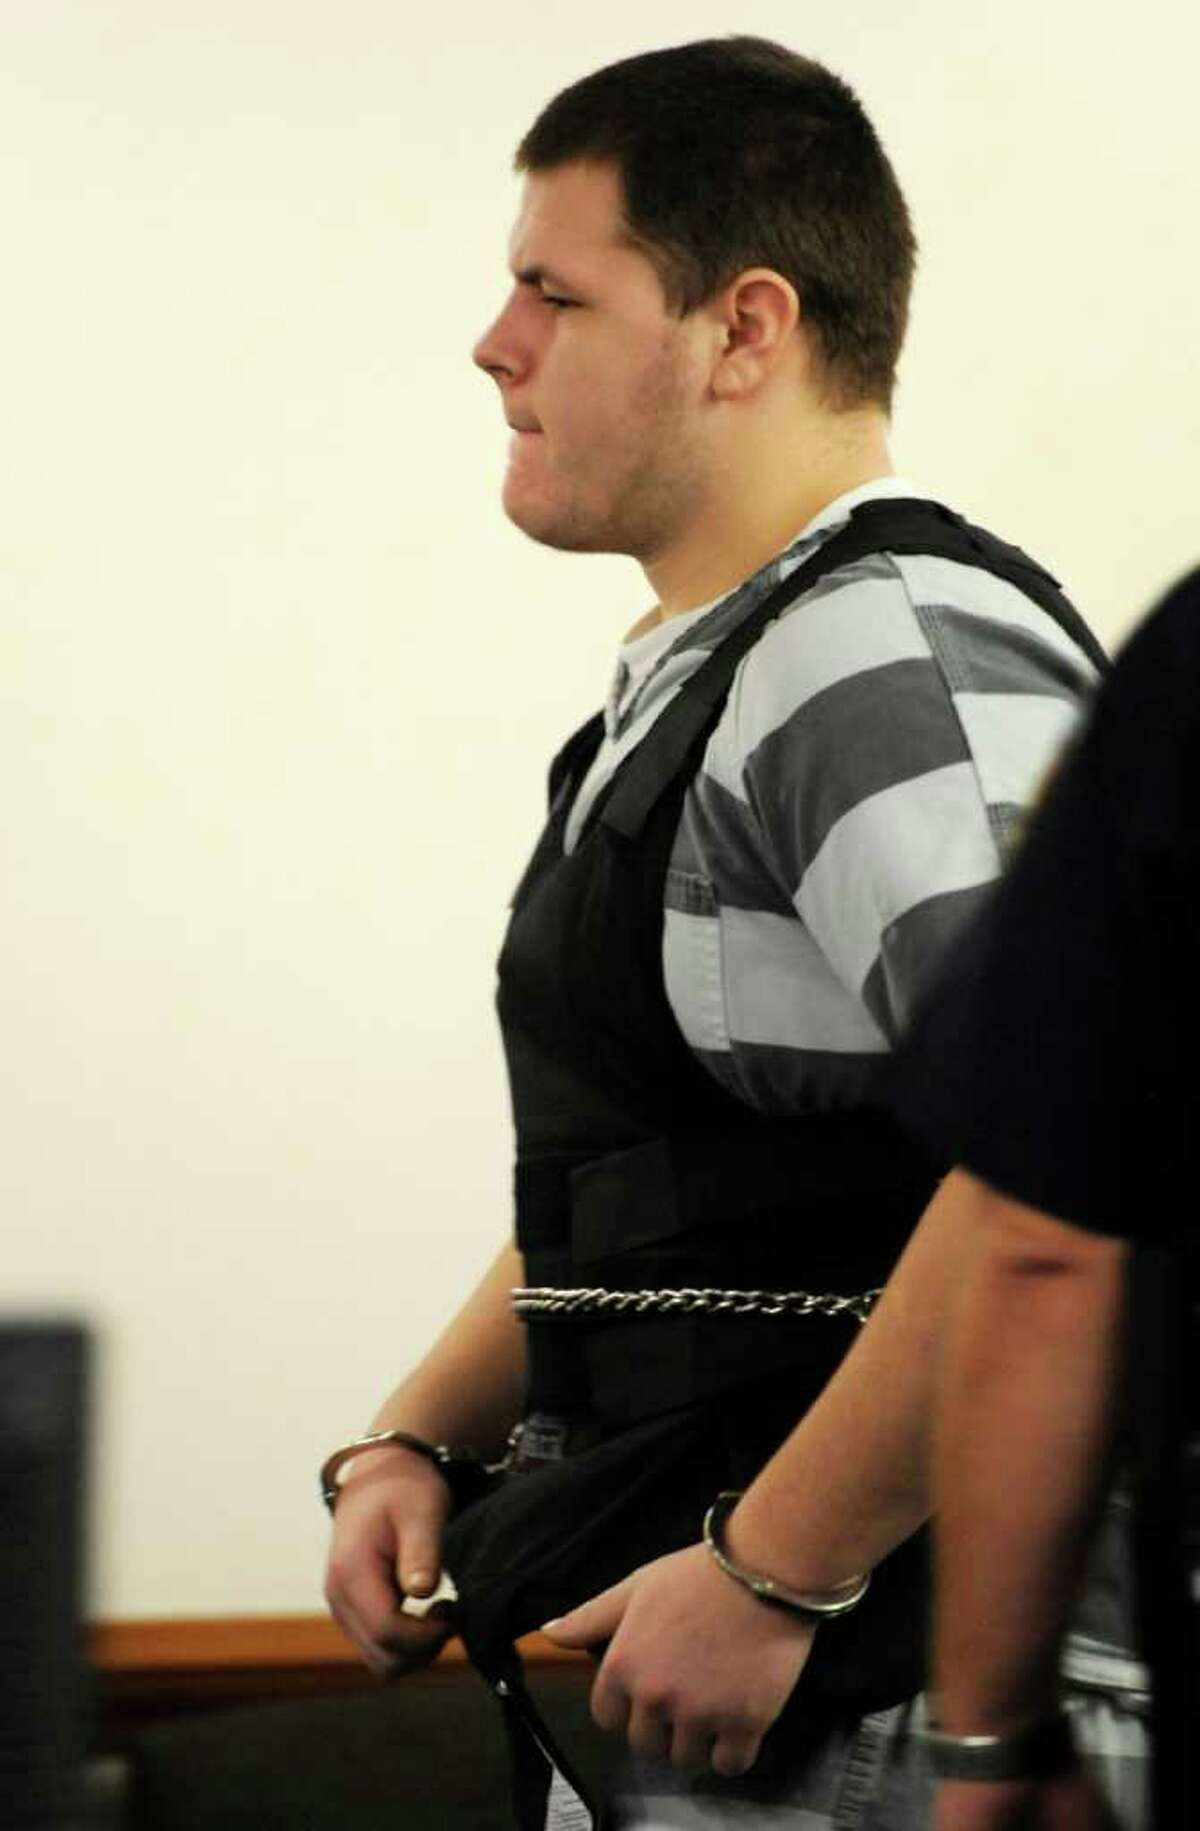 Matthew Slocum leaves courtroom after his arraignment on murder and arson in Washington County Court in Fort Edward, N.Y. September 28, 2011. (Skip Dickstein / Times Union)